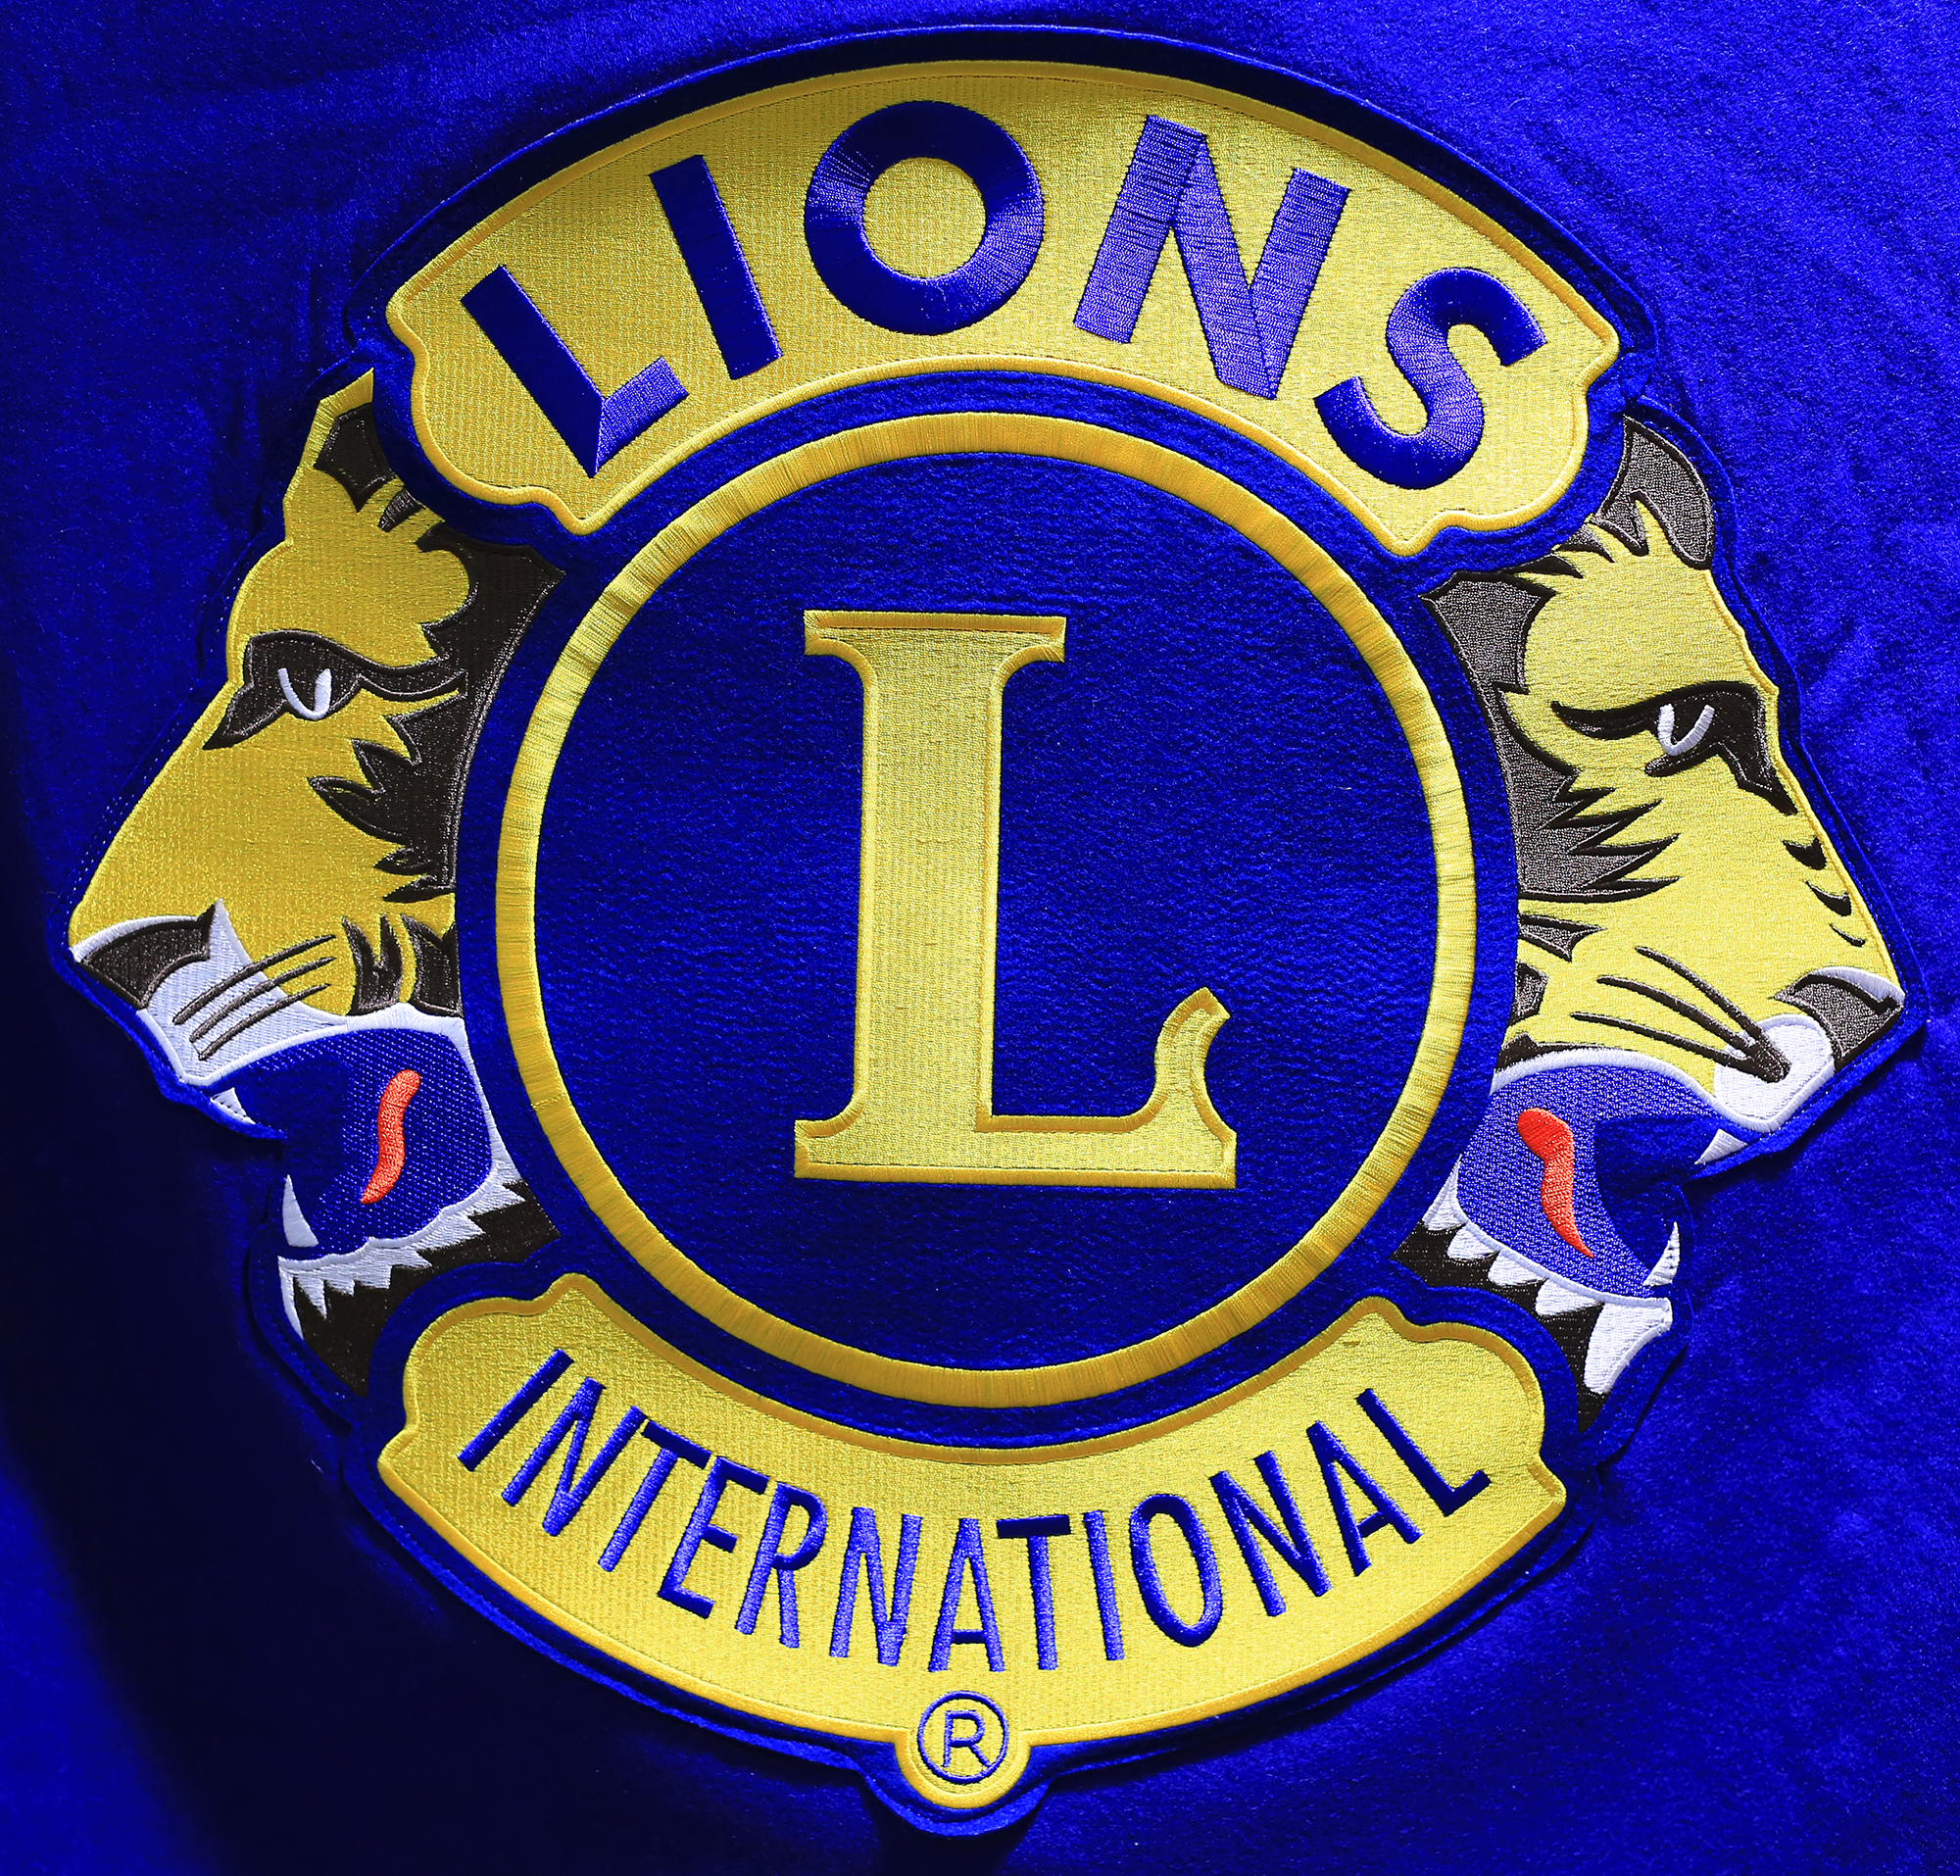 020e830b Lions Club President Recognized by International Leadership | DCTC News